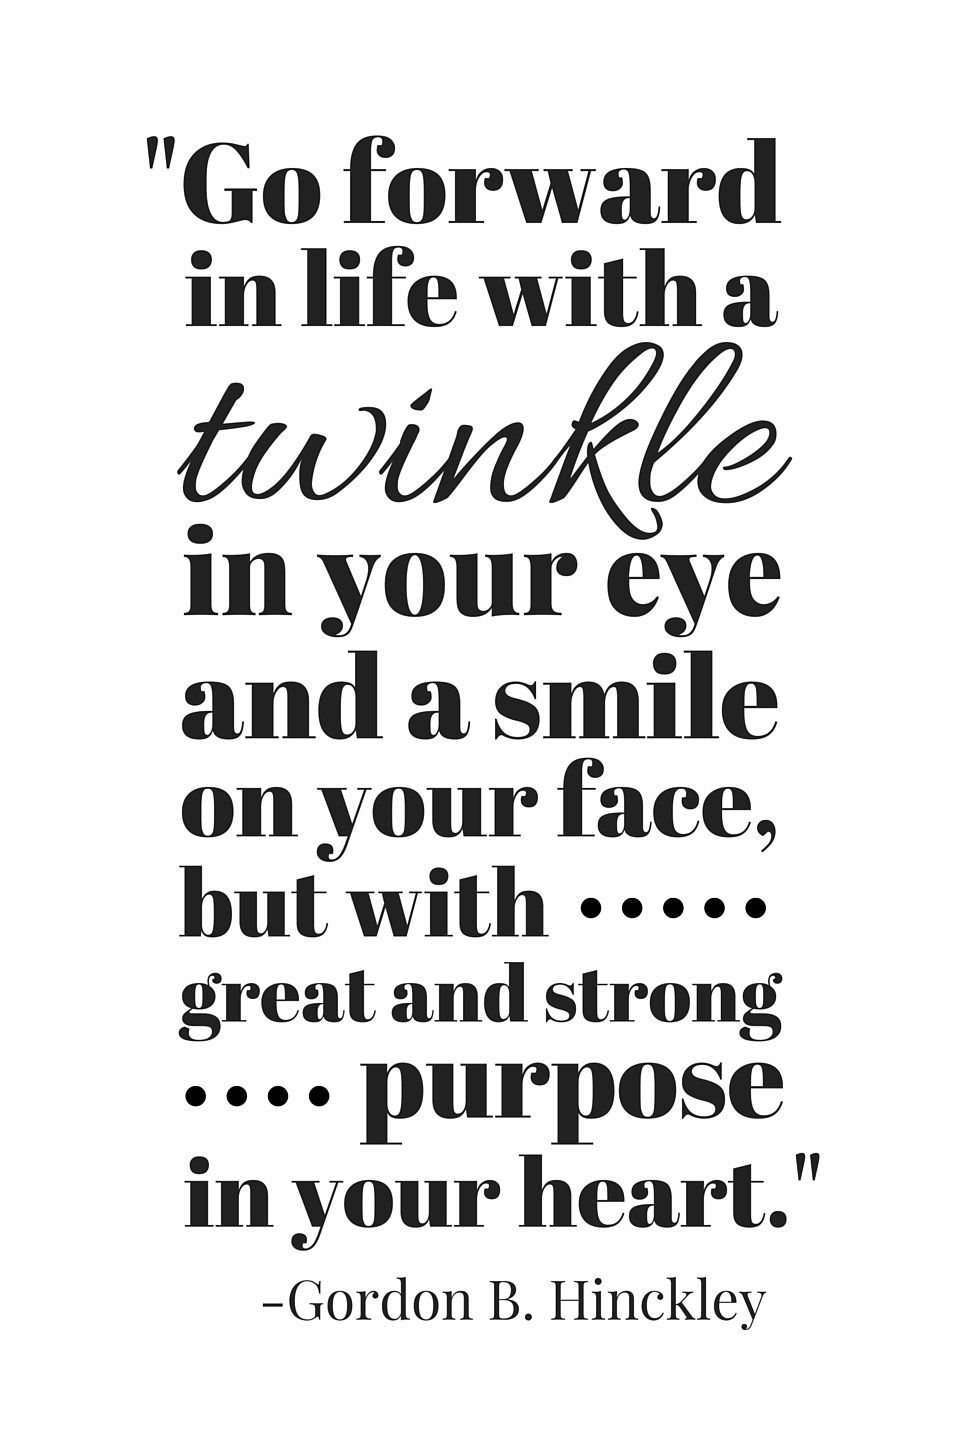 Gordon B Hinckley Quotes Amusing The Best Way To Start The New Year  Pinterest  Eye Retirement And